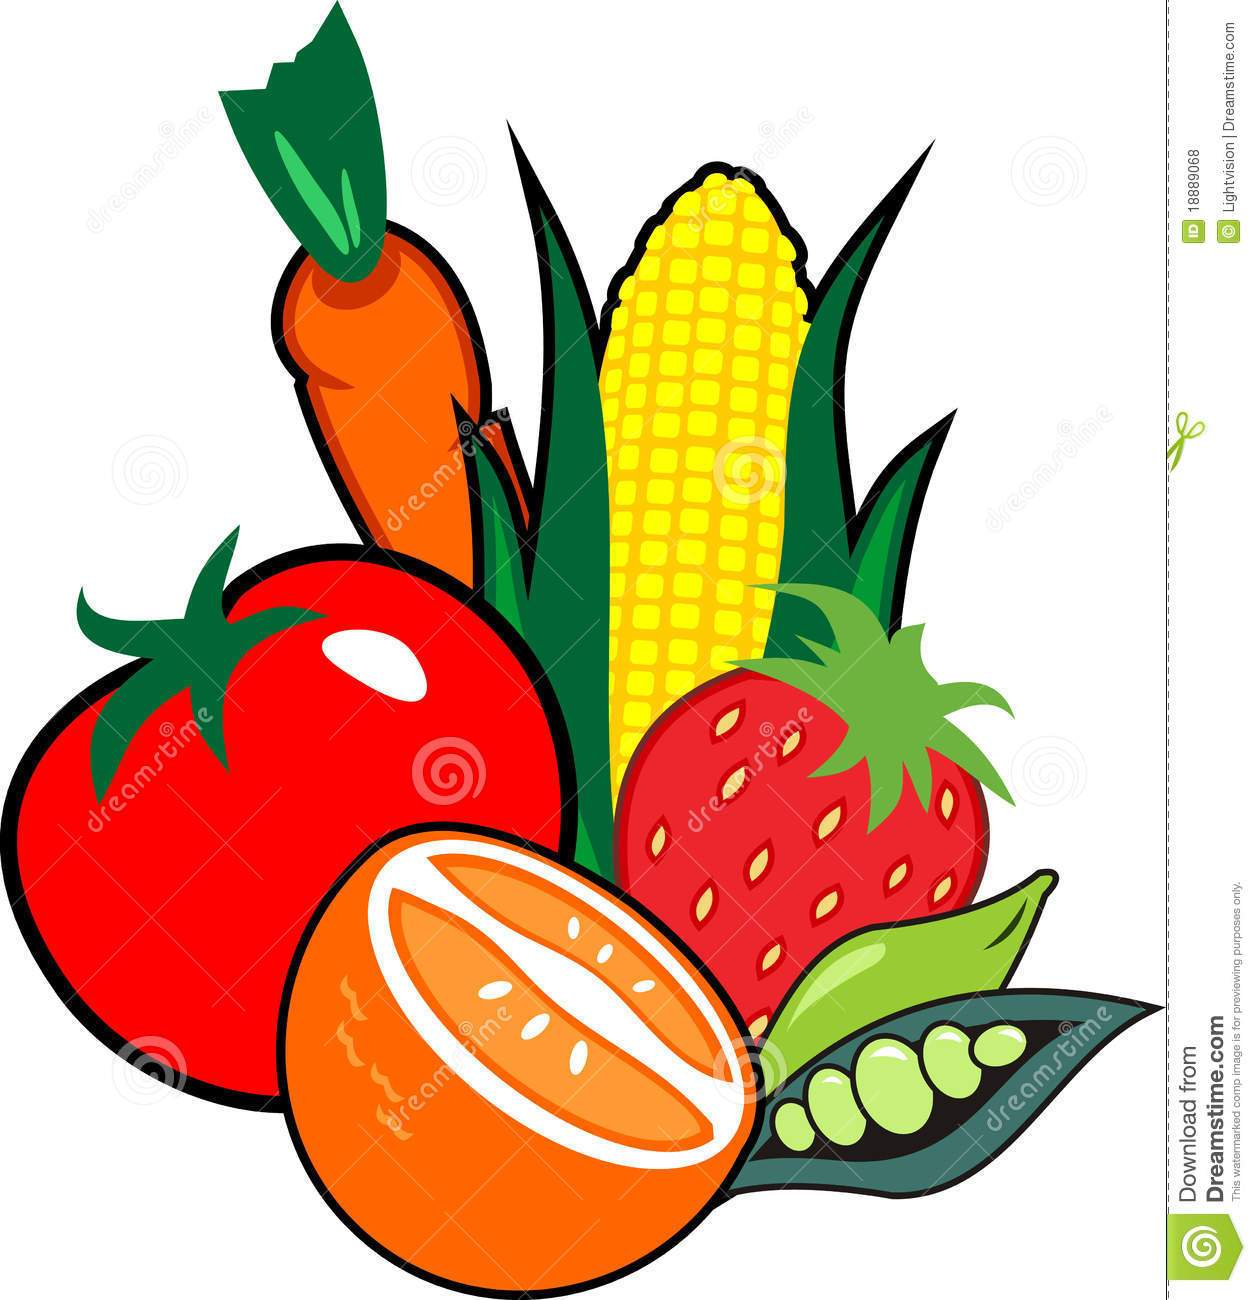 Fruit vegetables clipart 6 » Clipart Portal.